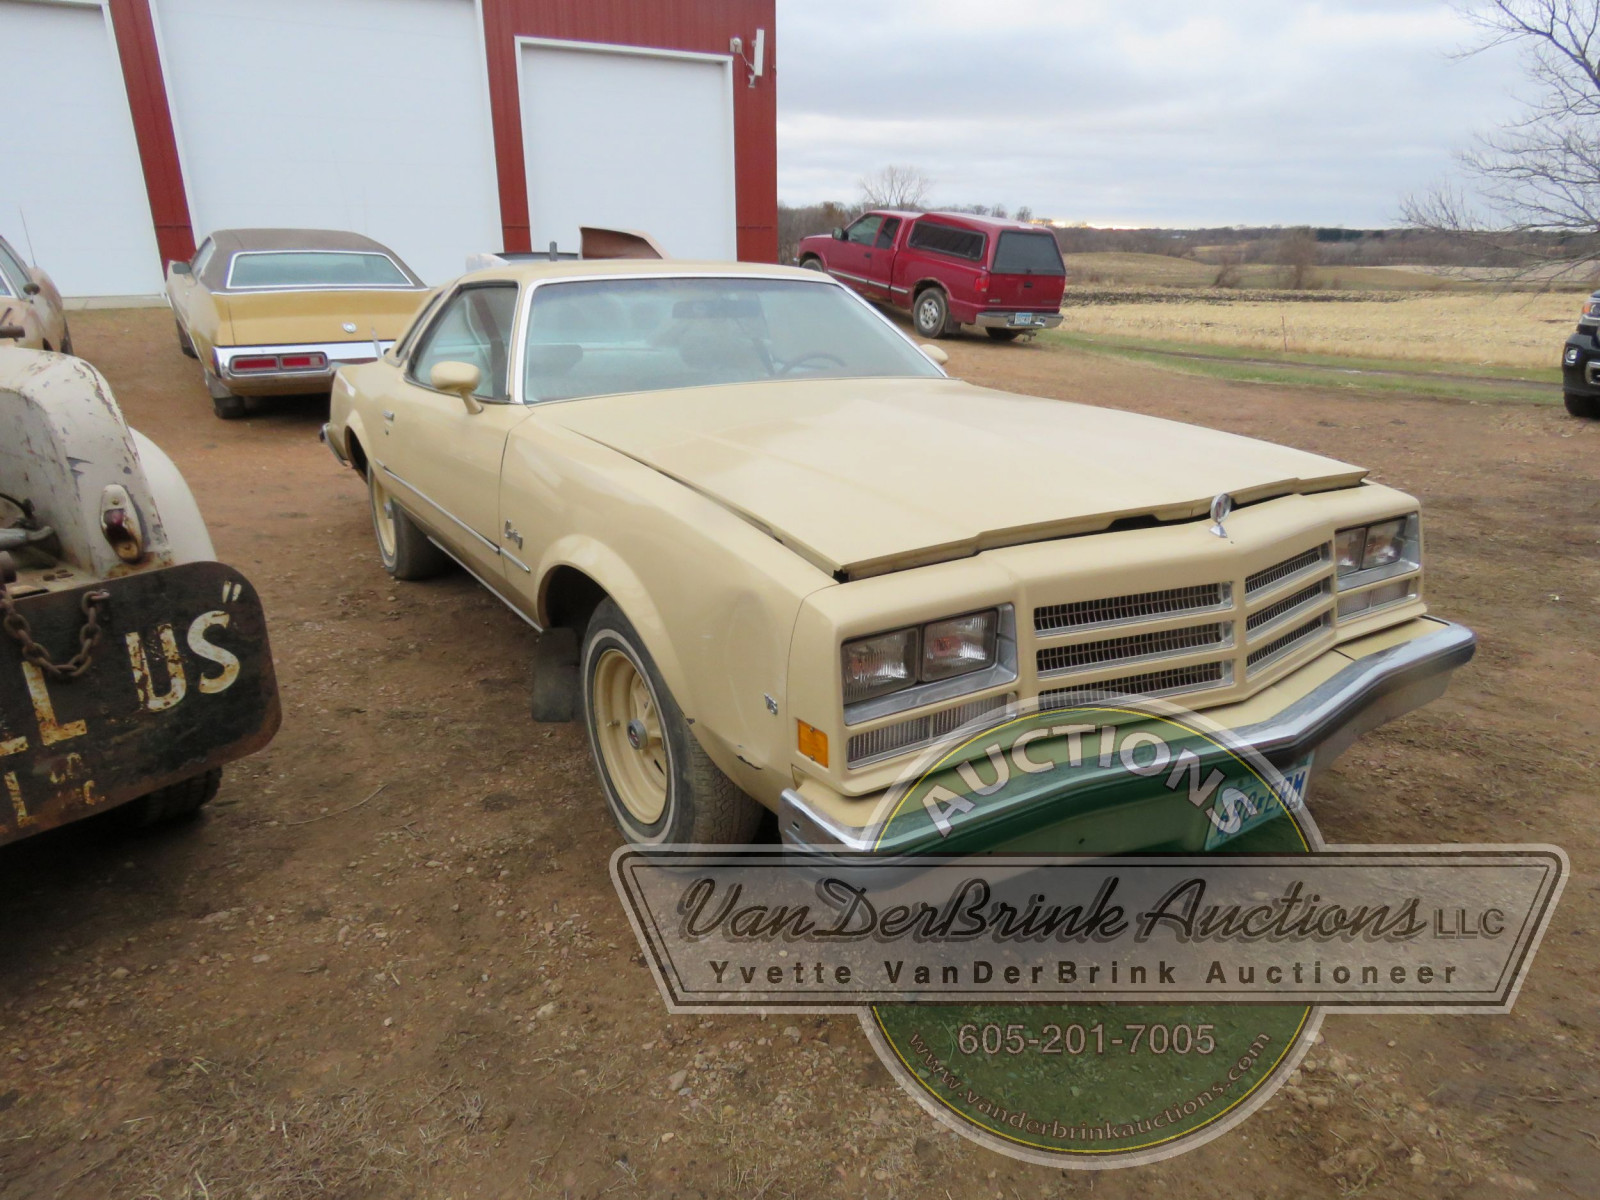 1977 Buick Century Coupe - Image 3